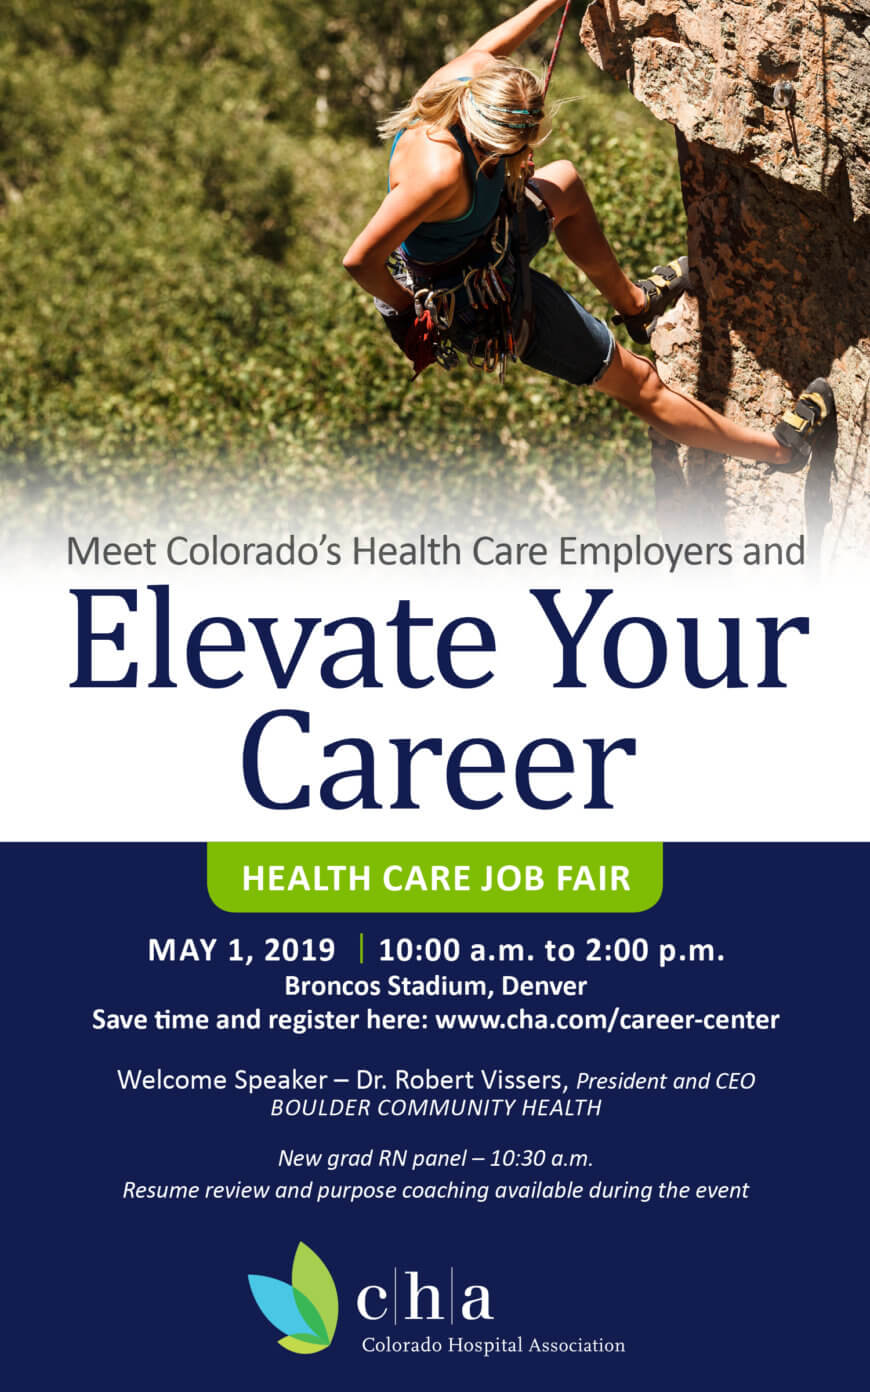 Join us for the CHA Healthcare Job Fair on May 1, 2019 from 10 – 2pm